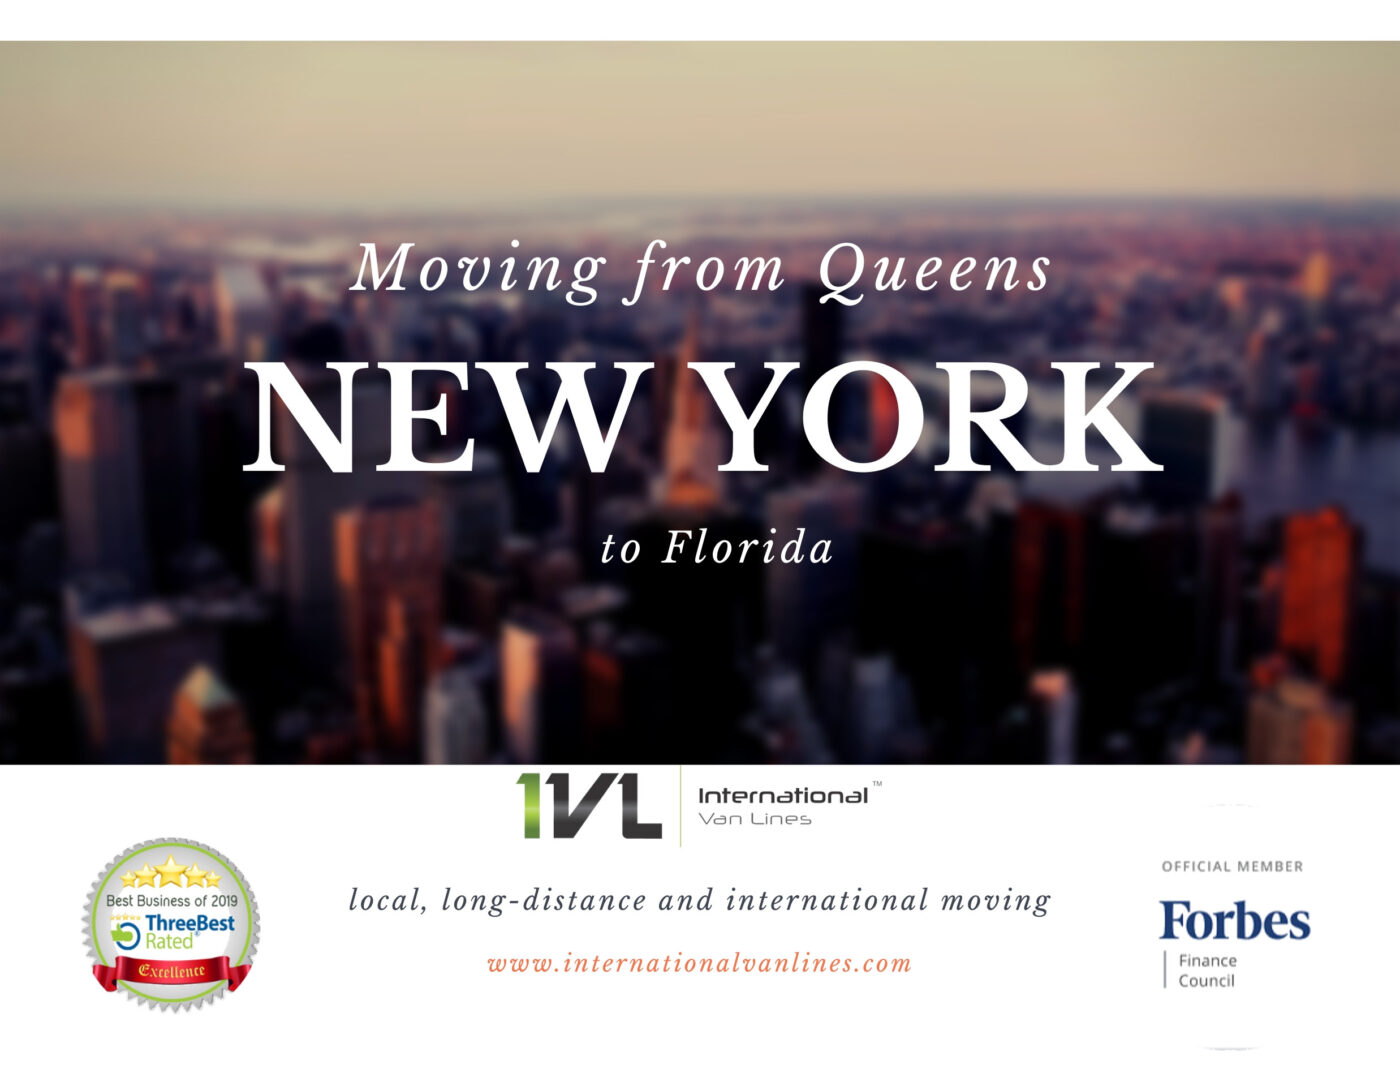 The cost of moving from Queens, NY to Florida